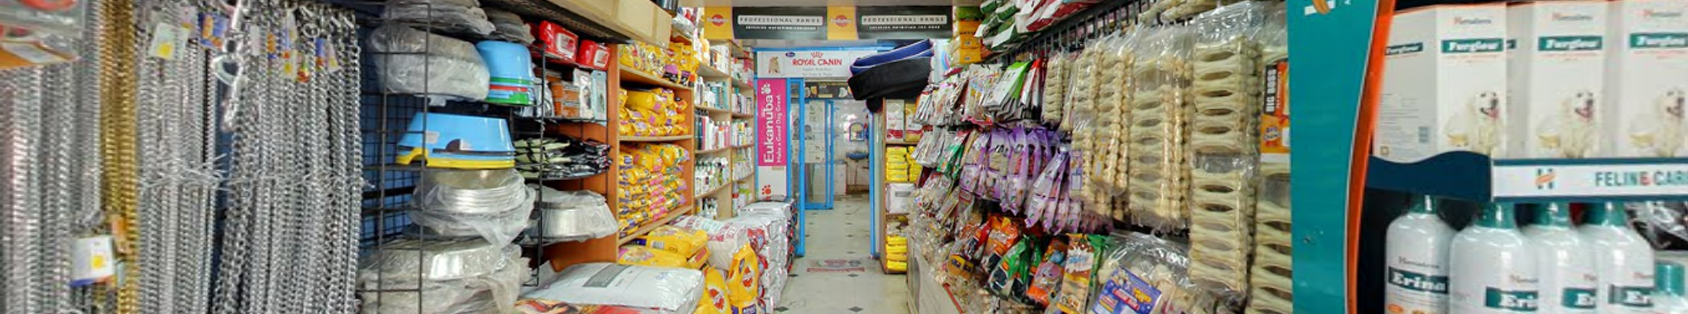 Pet Shop in Bangalore